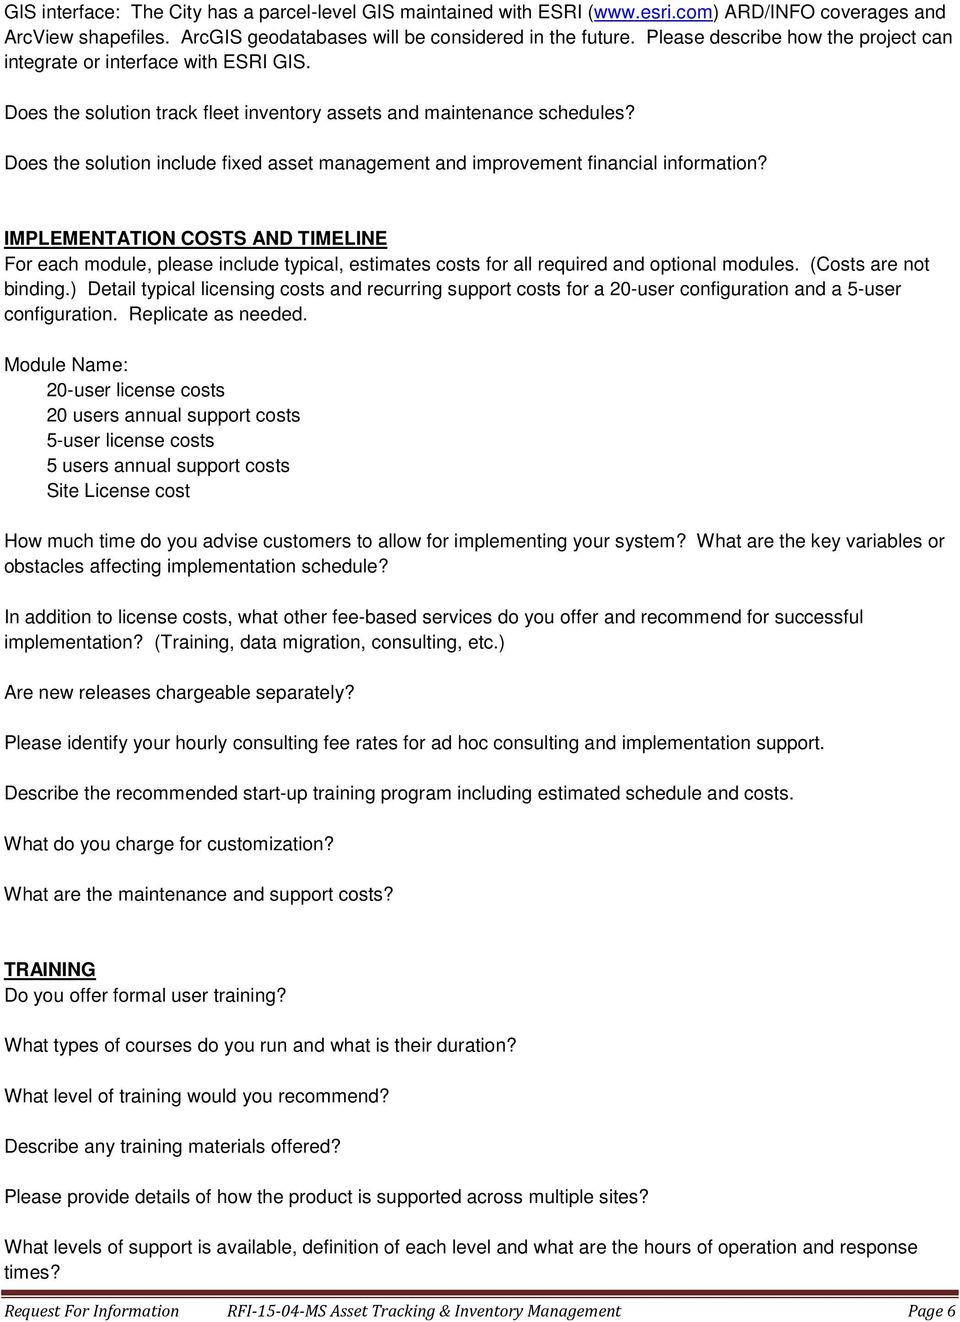 Does the solution include fixed asset management and improvement financial information?